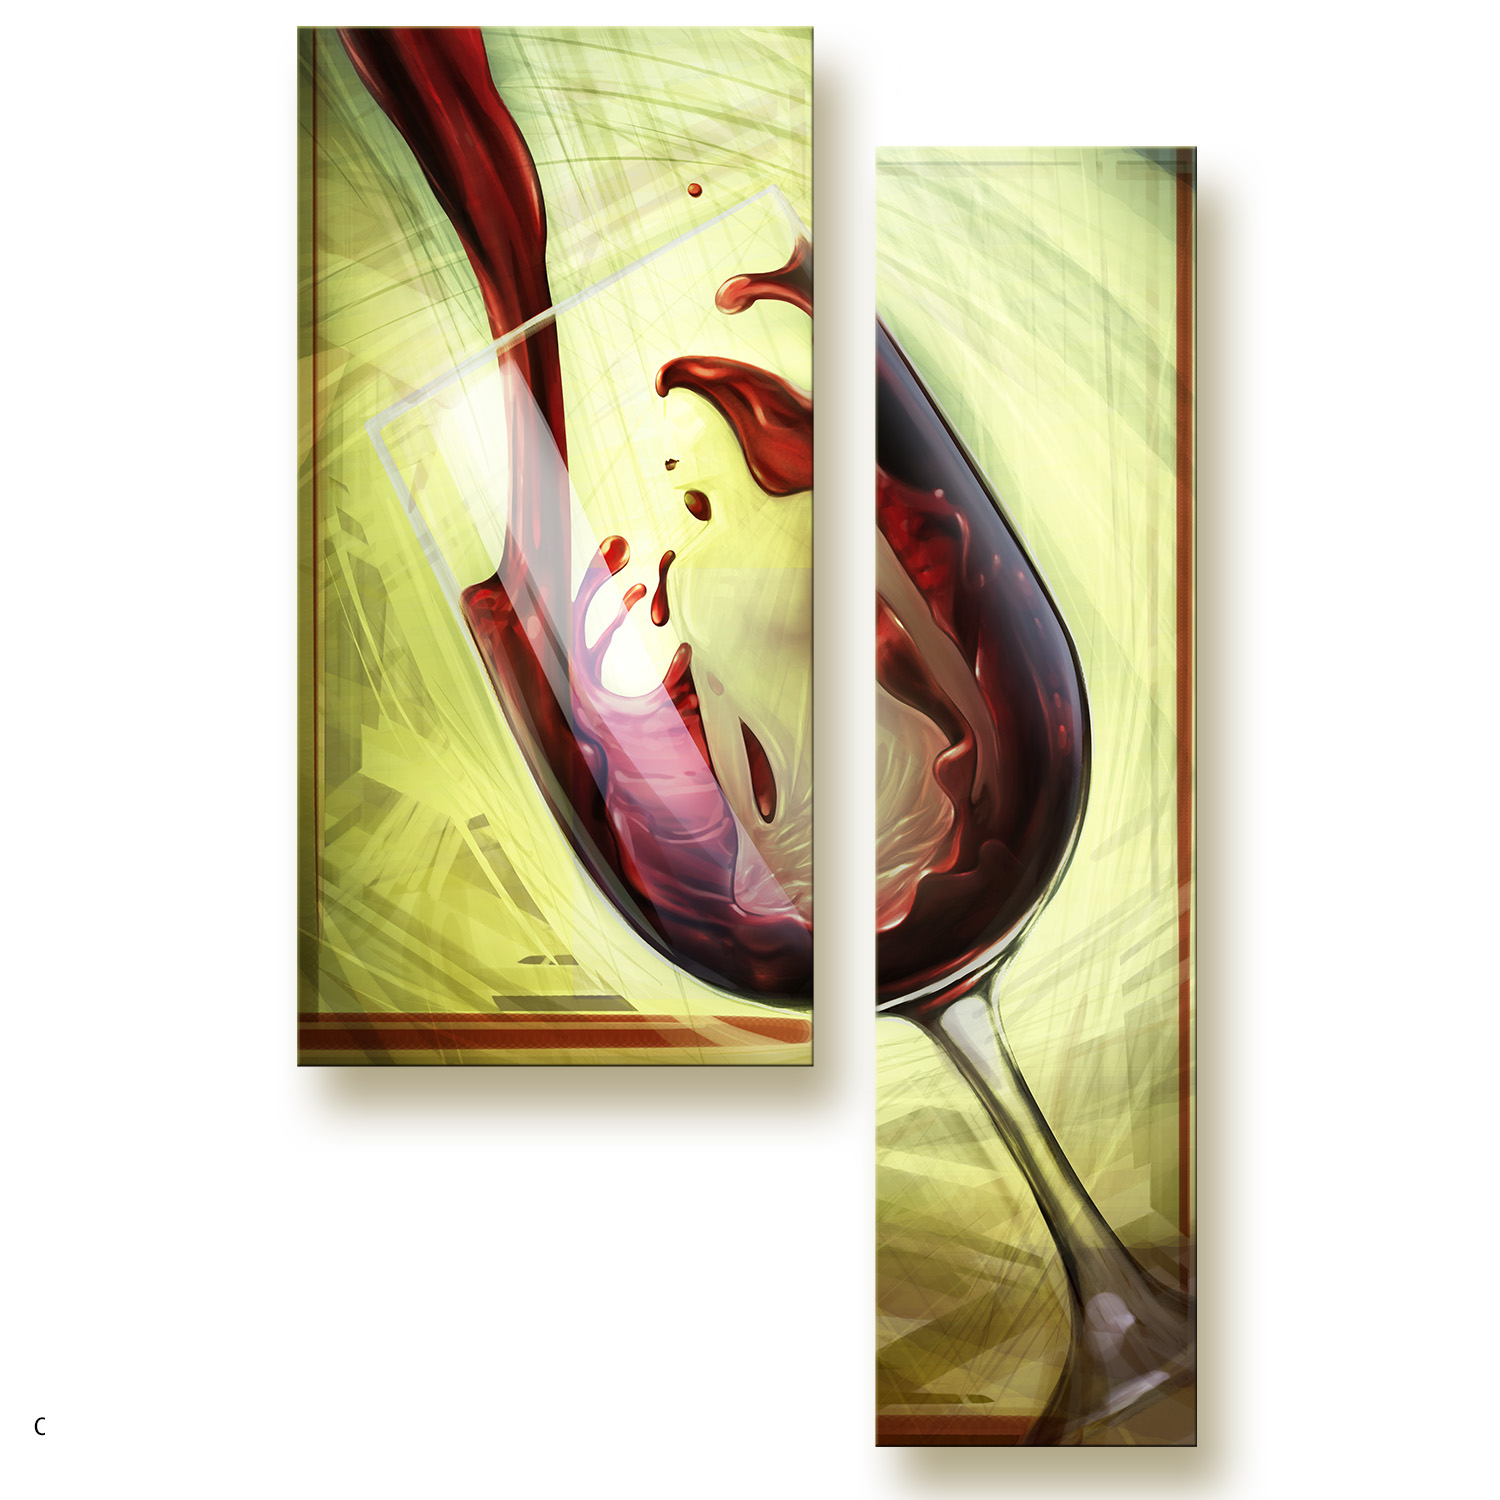 Do you see the Woman Inside? Women and Wine - Taste 1 - by Ed Myers